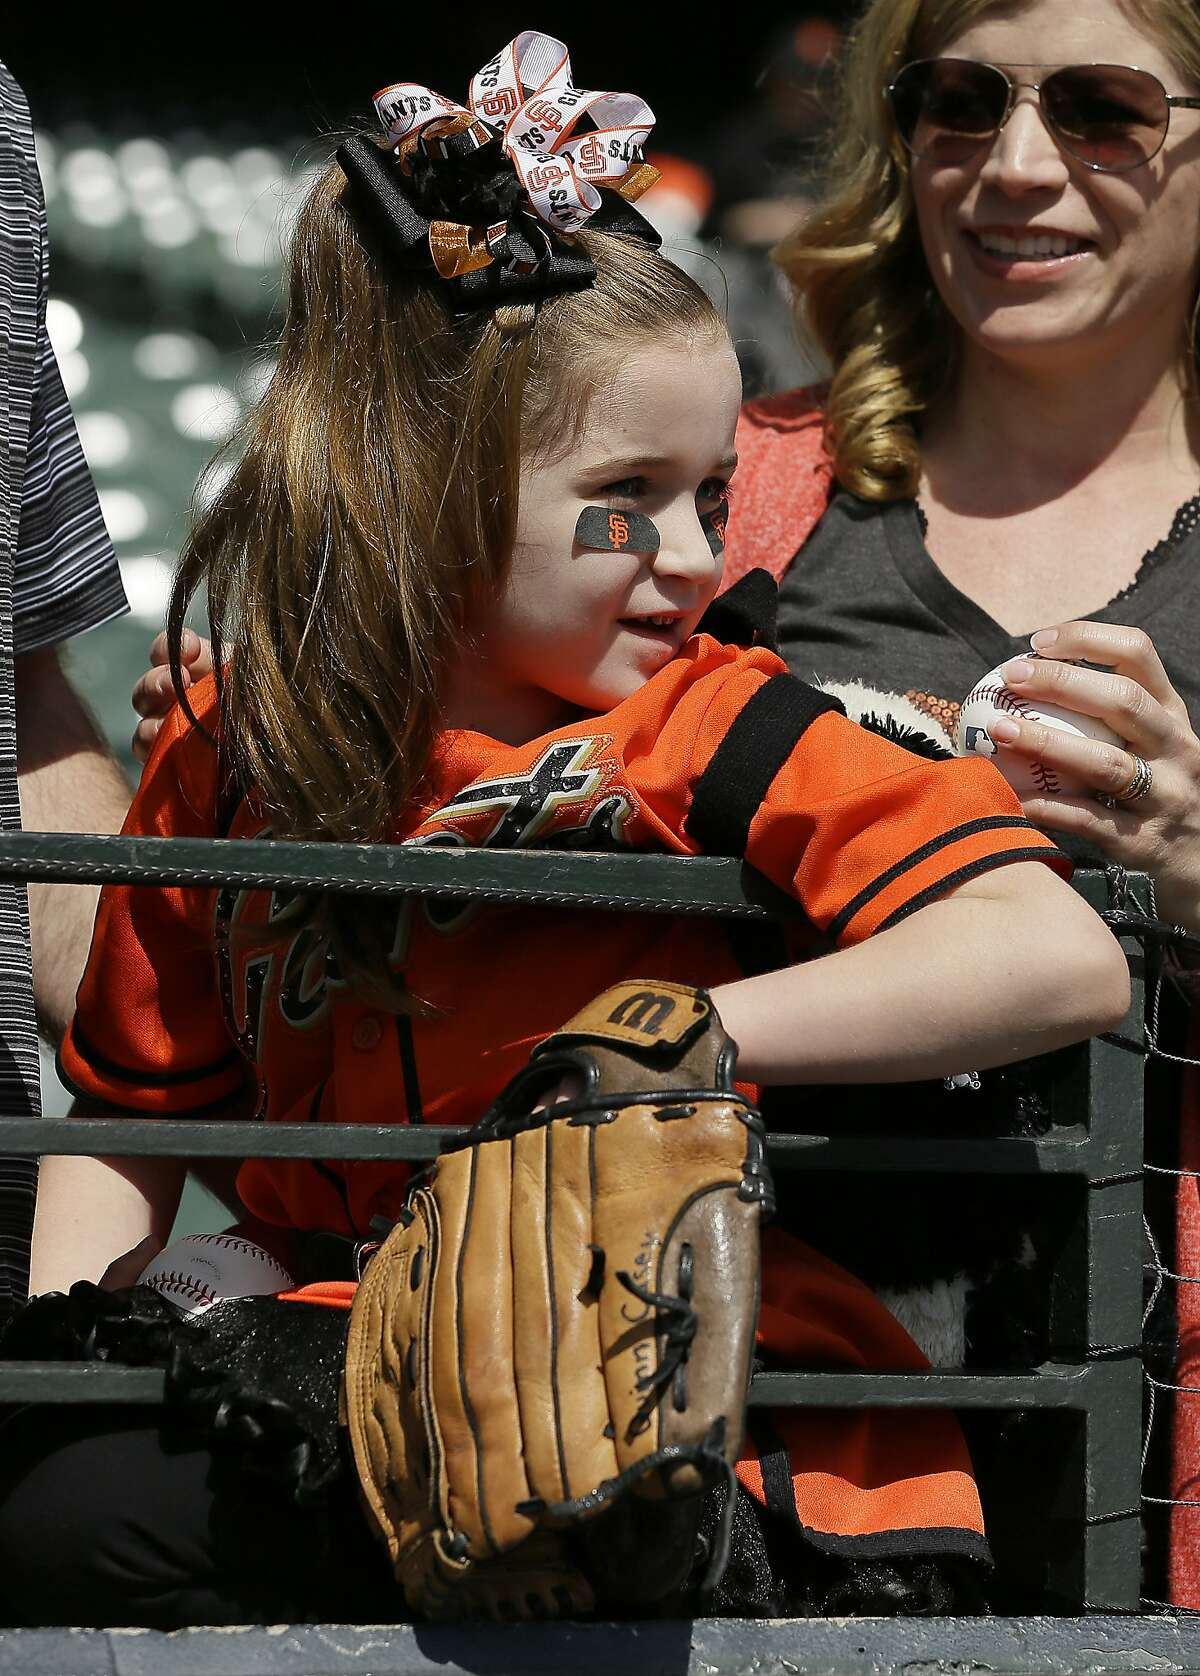 Emily Scadina, 6, of San Jose watches batting practice before the start of an opening day baseball game between the San Francisco Giants and the Seattle Mariners Tuesday, April 3, 2018, in San Francisco.